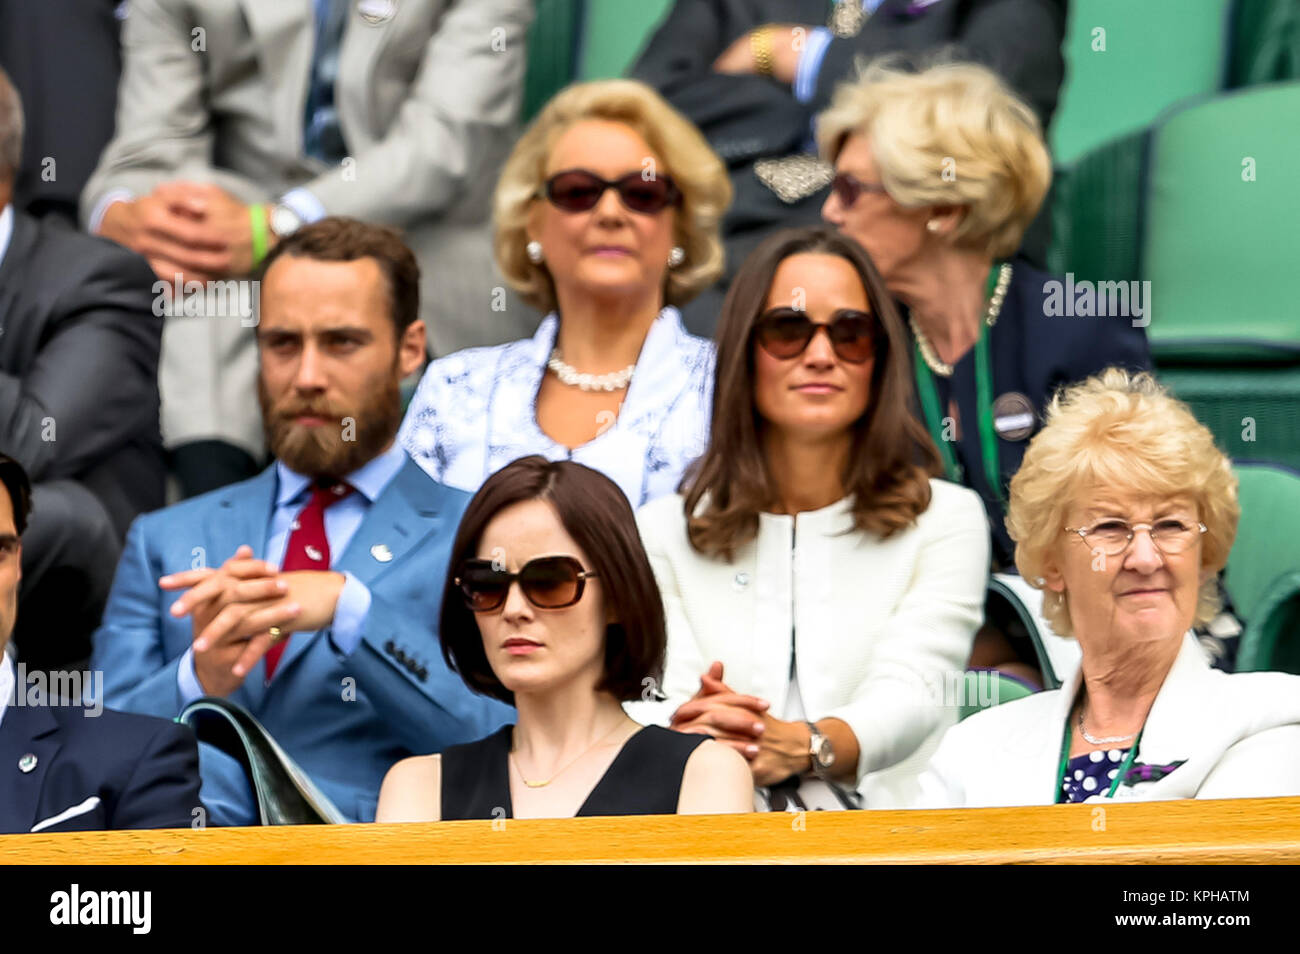 catholic singles in camilla Camilla parker bowles married prince charles in a civil service in 2005 the two had been romantically involved for more than 25 years camilla parker bowles was born on july 17, 1947, in london .